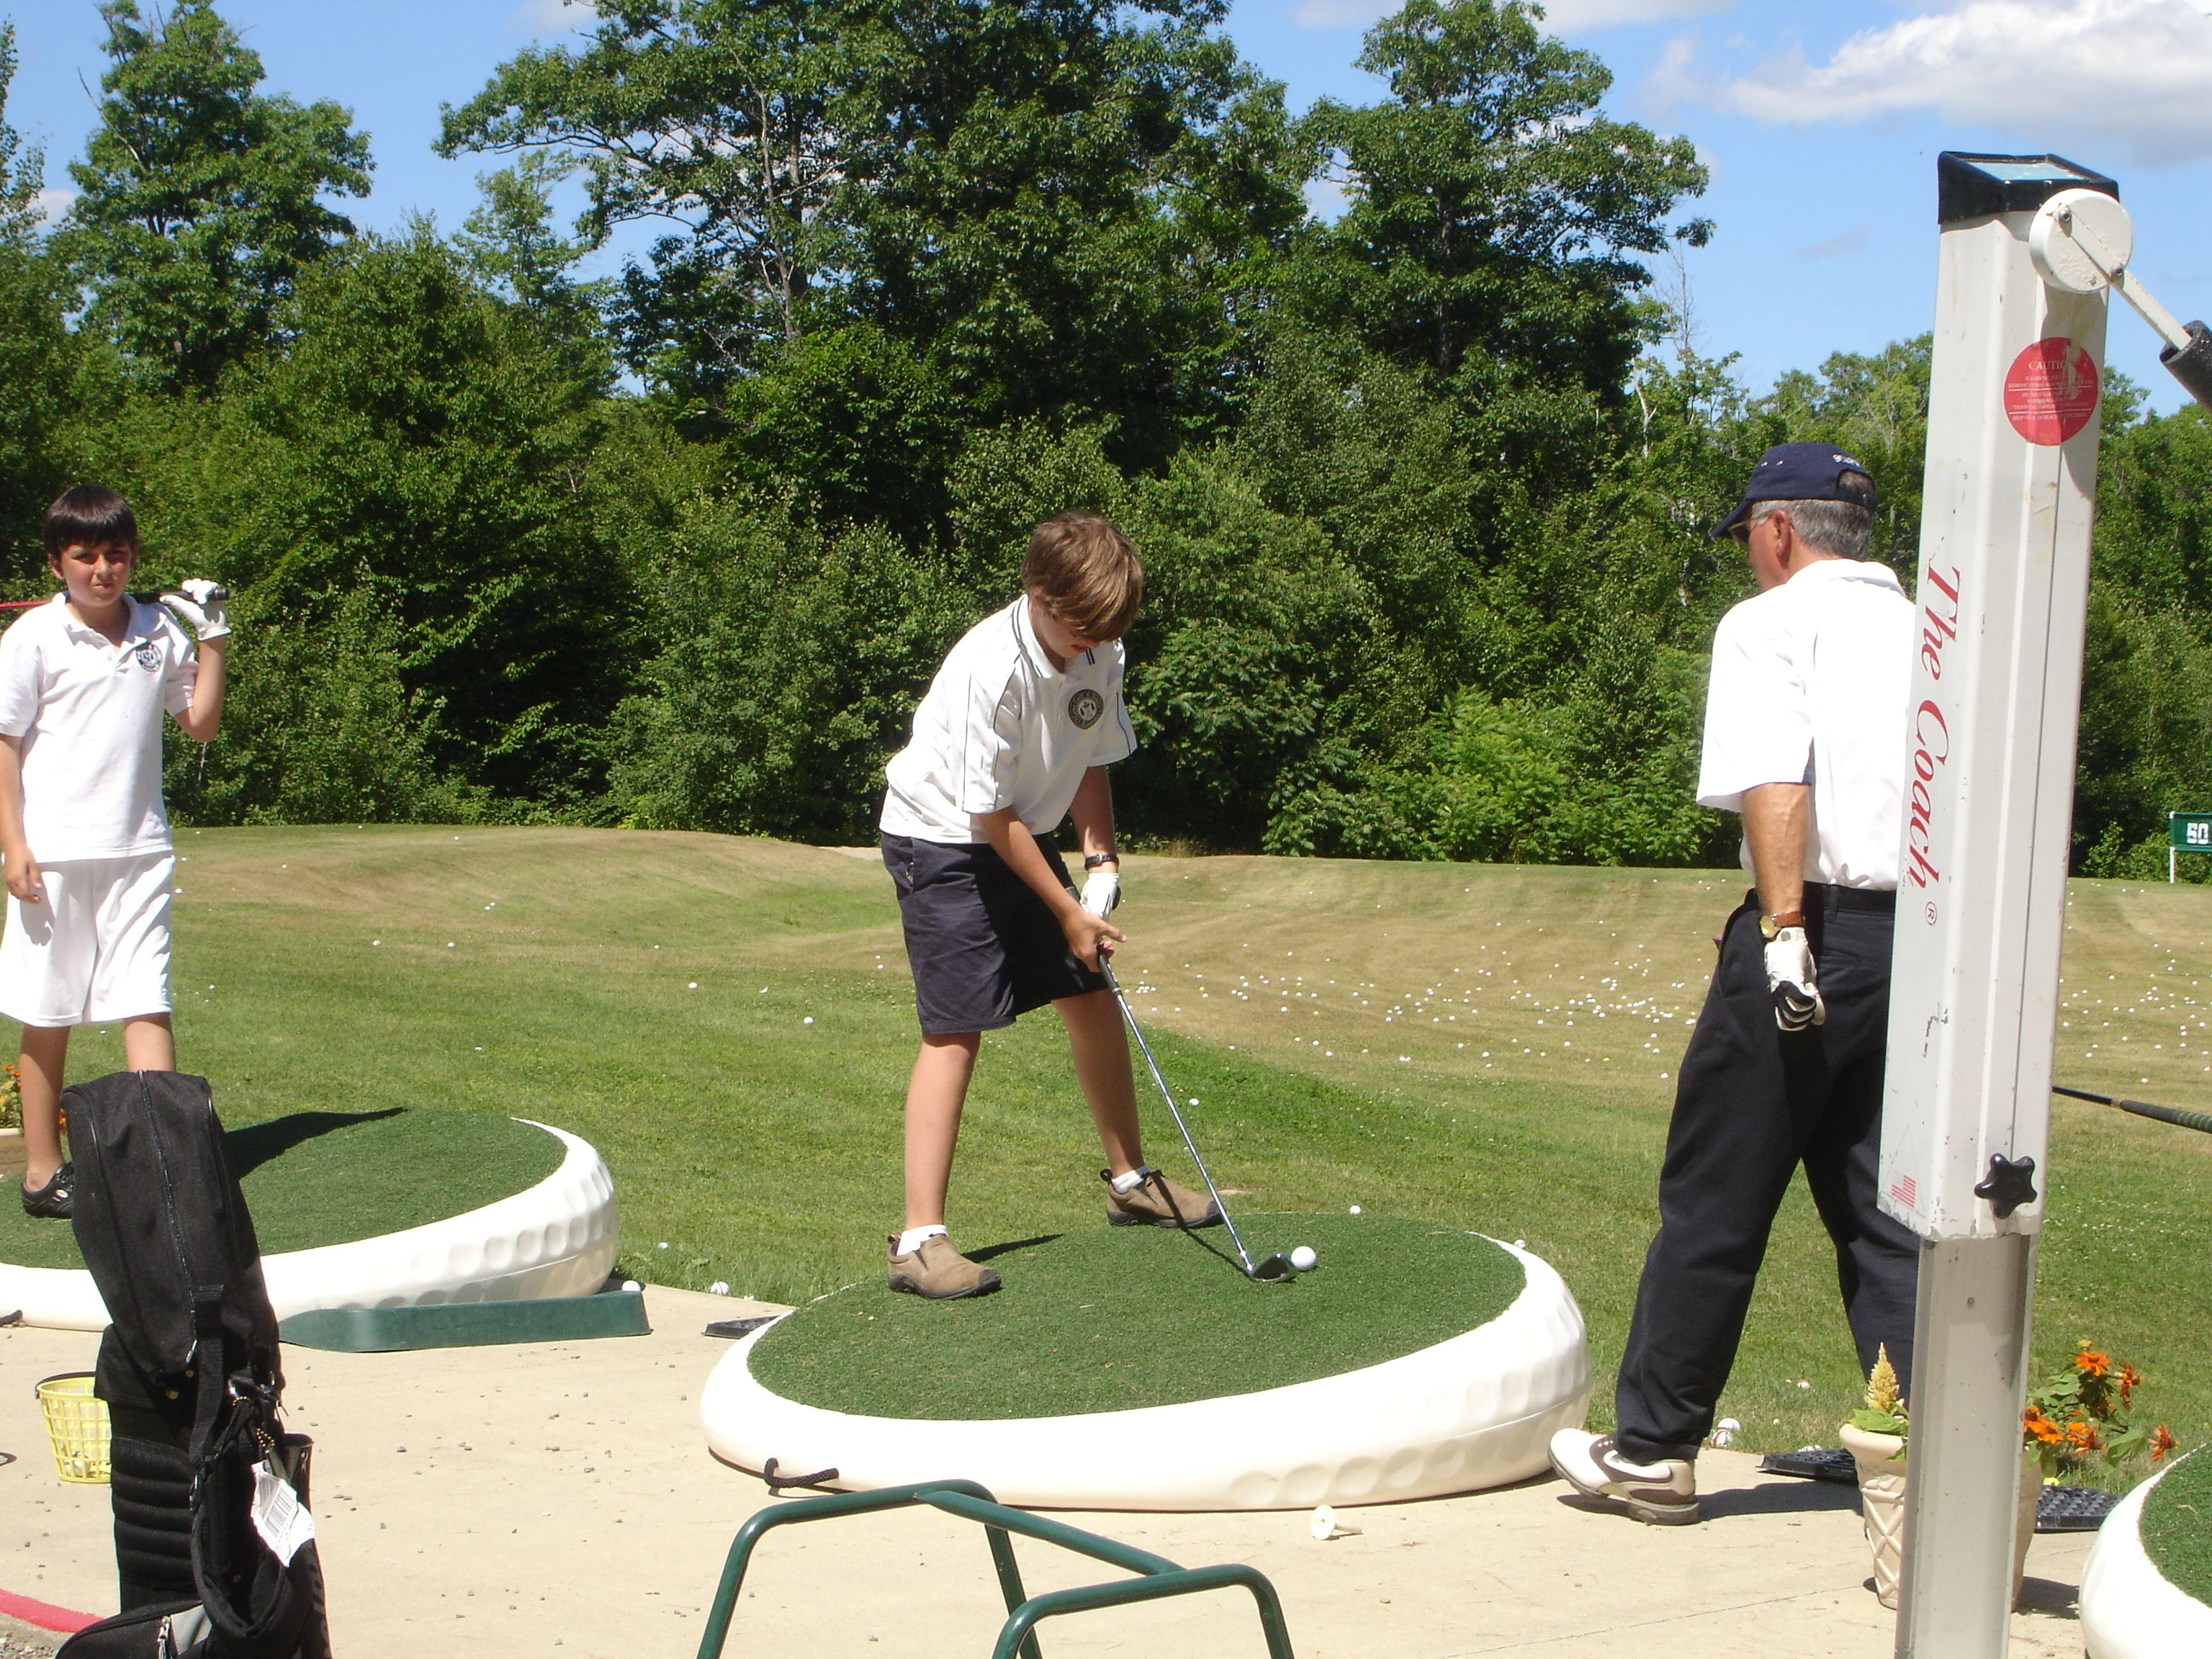 Golf Training Junior Golf and Tennis Camp for Kids